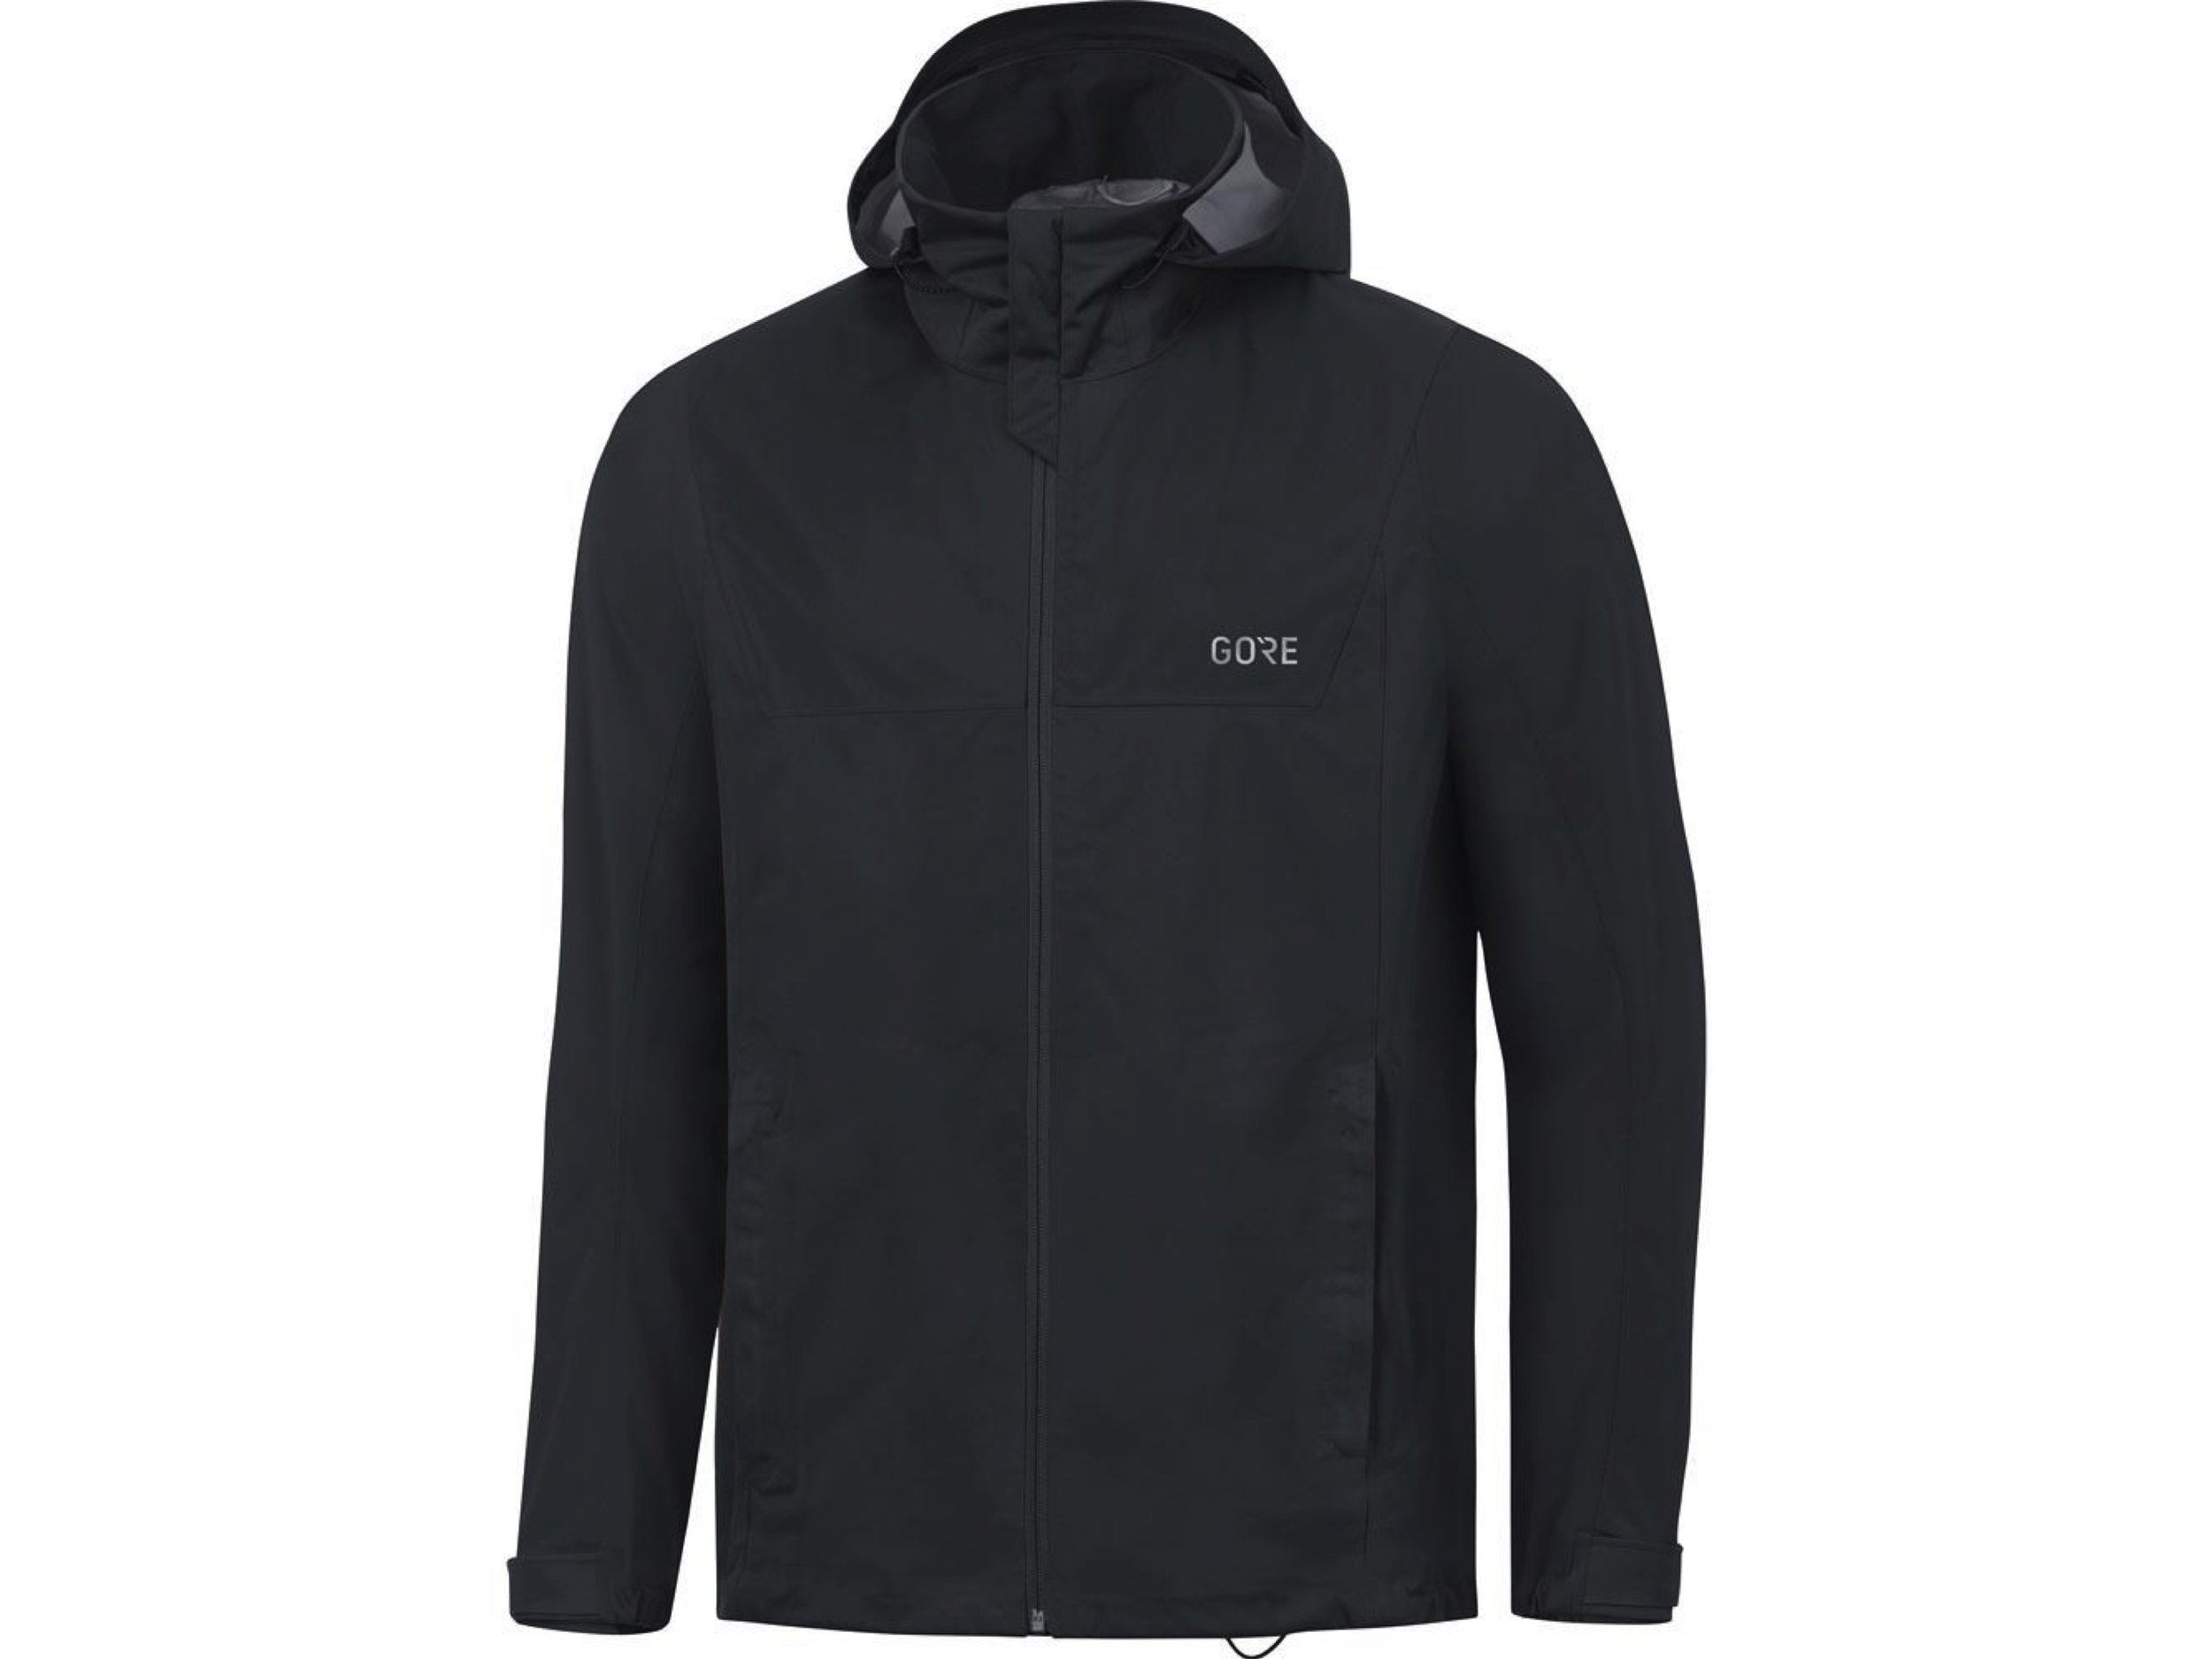 GORE® R3 GORE-TEX Active rain jacket